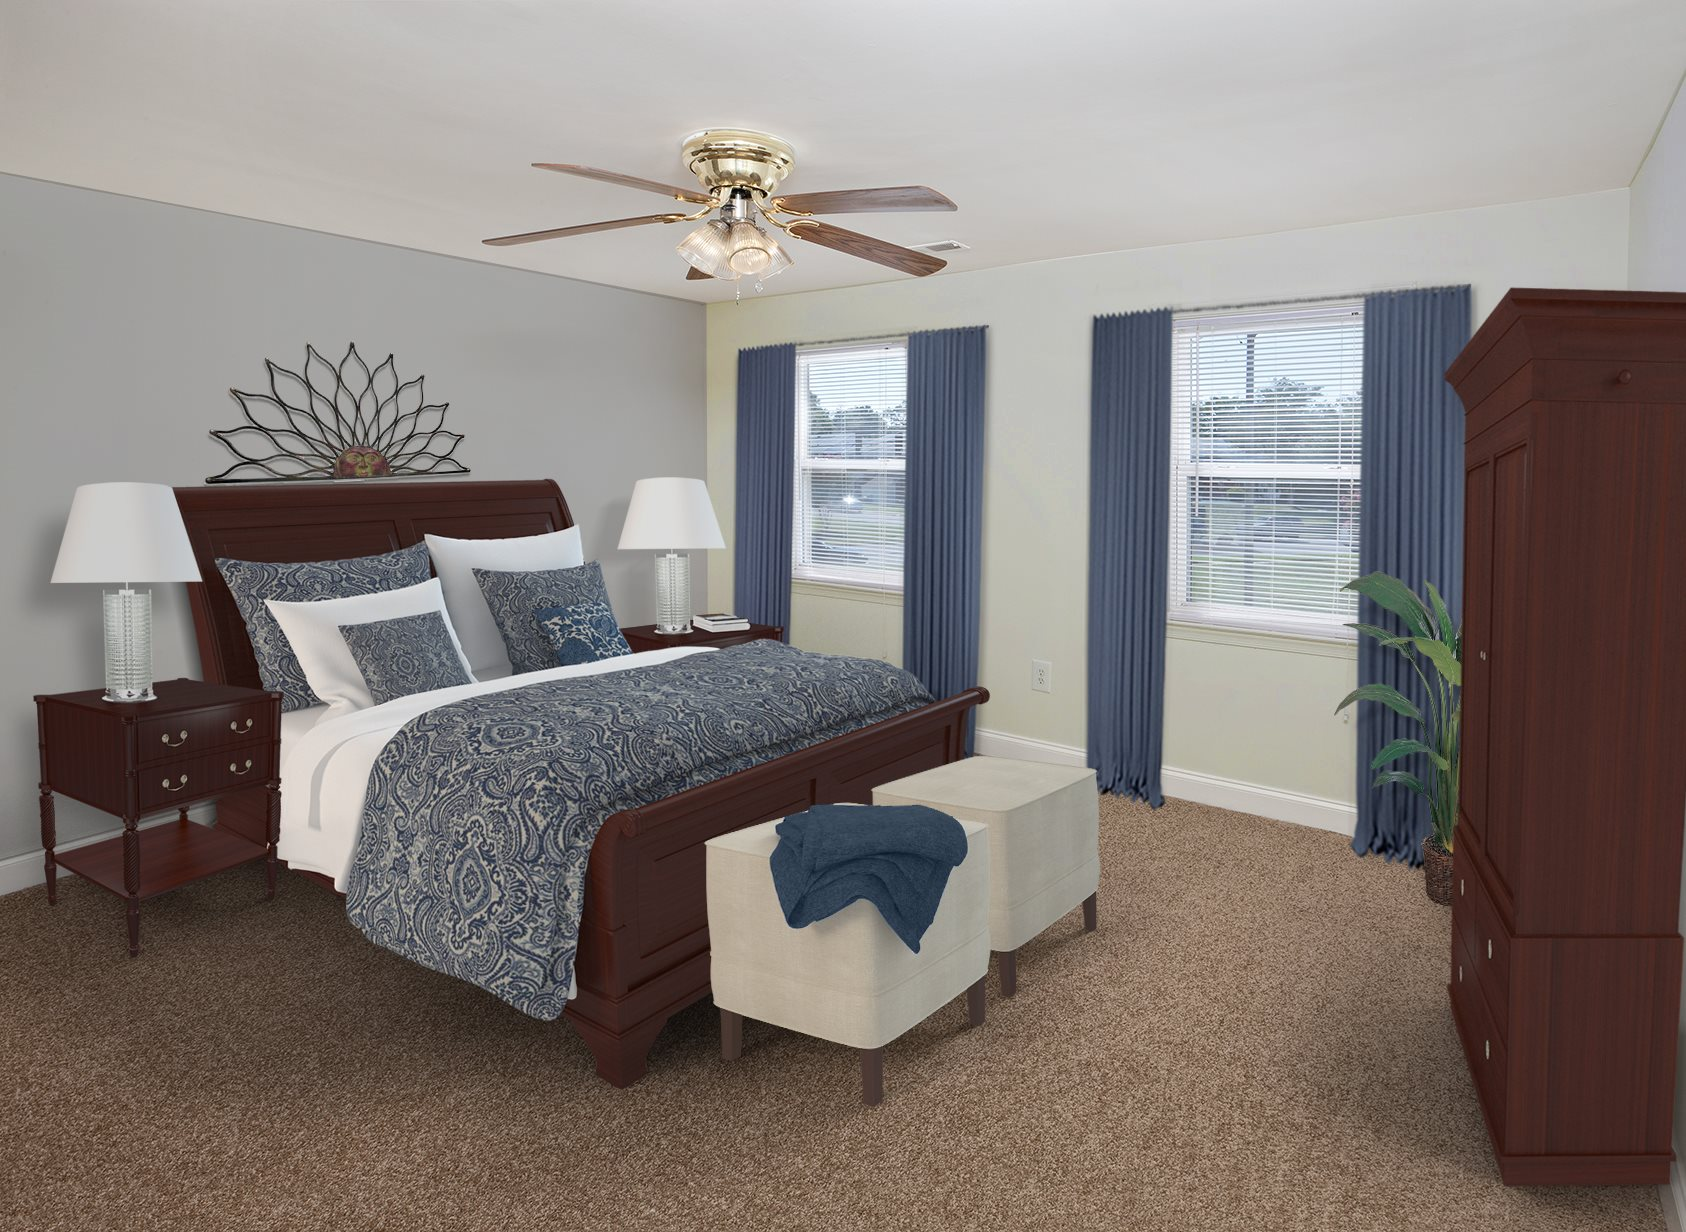 Spacious carpeted bedrooms at Day Village Townhomes, Dundalk, MD,21222